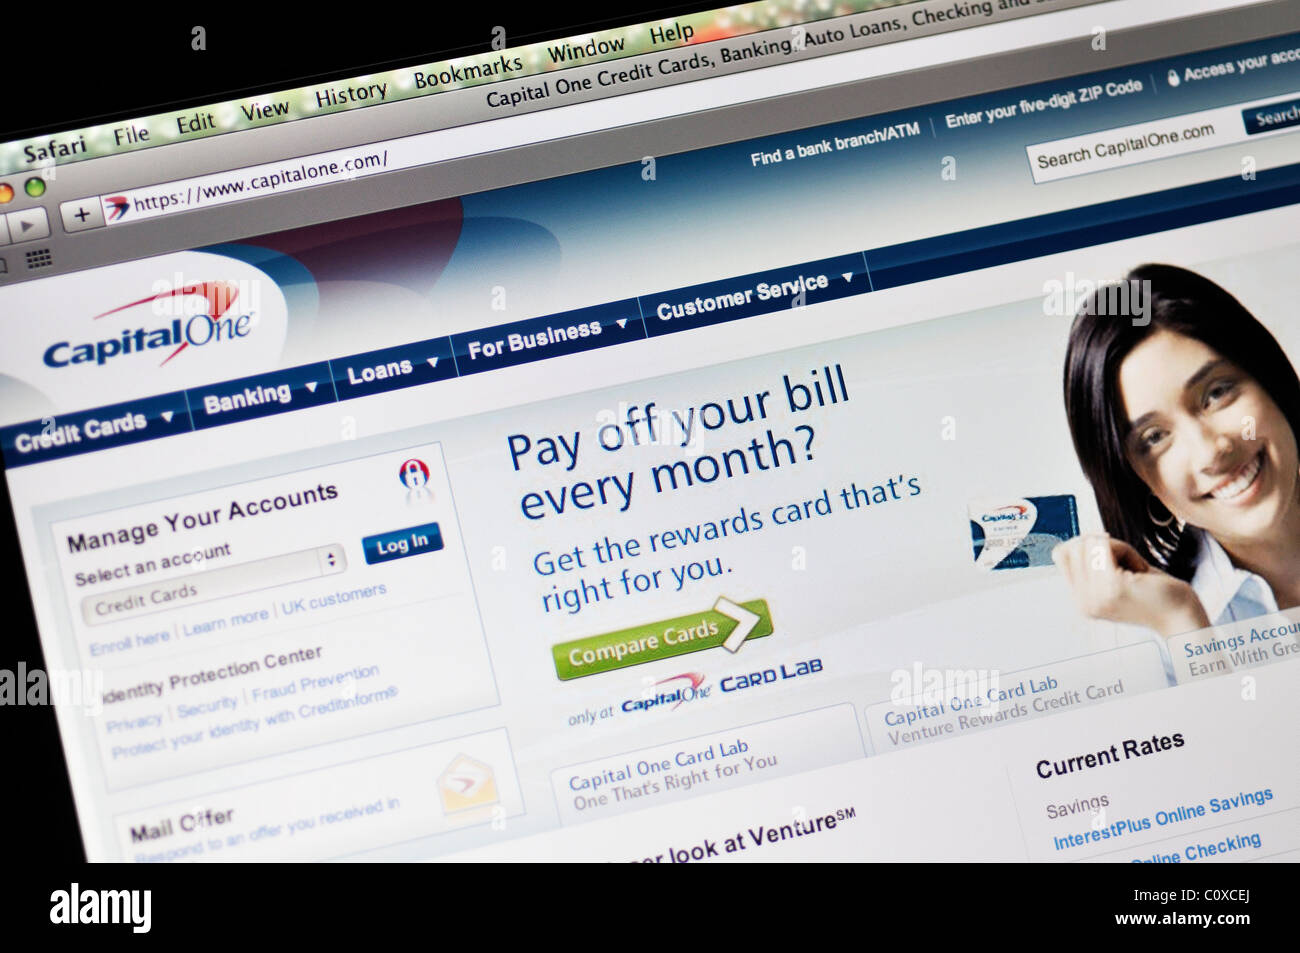 How to access capital one credit card online